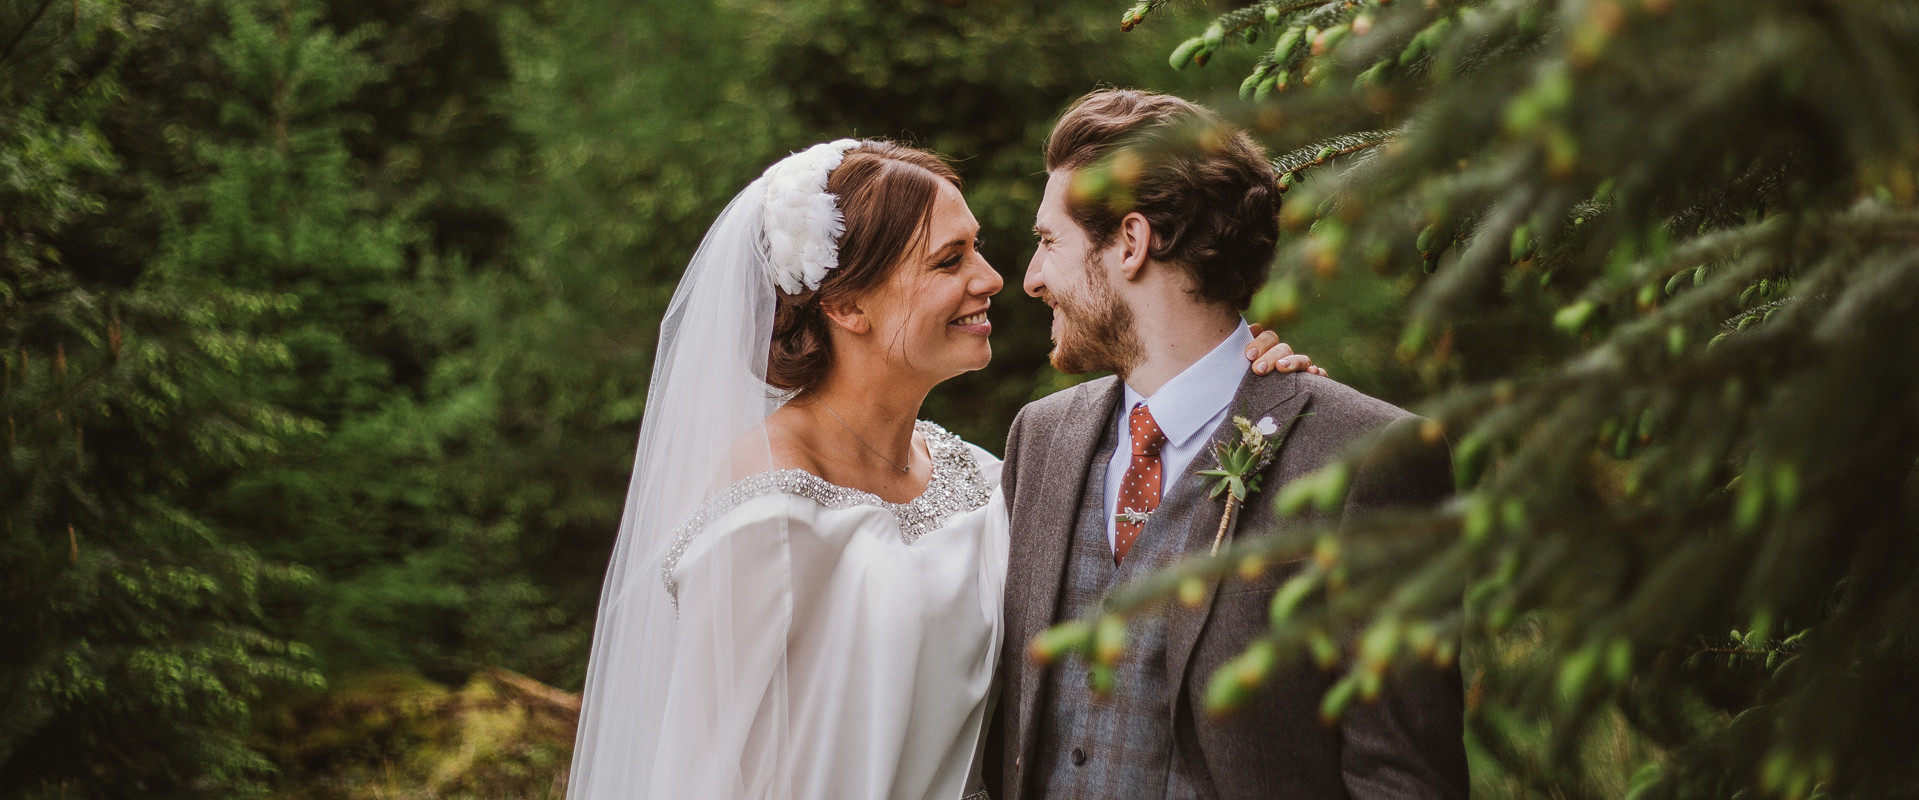 Relaxed photography for a Lancashire wedding